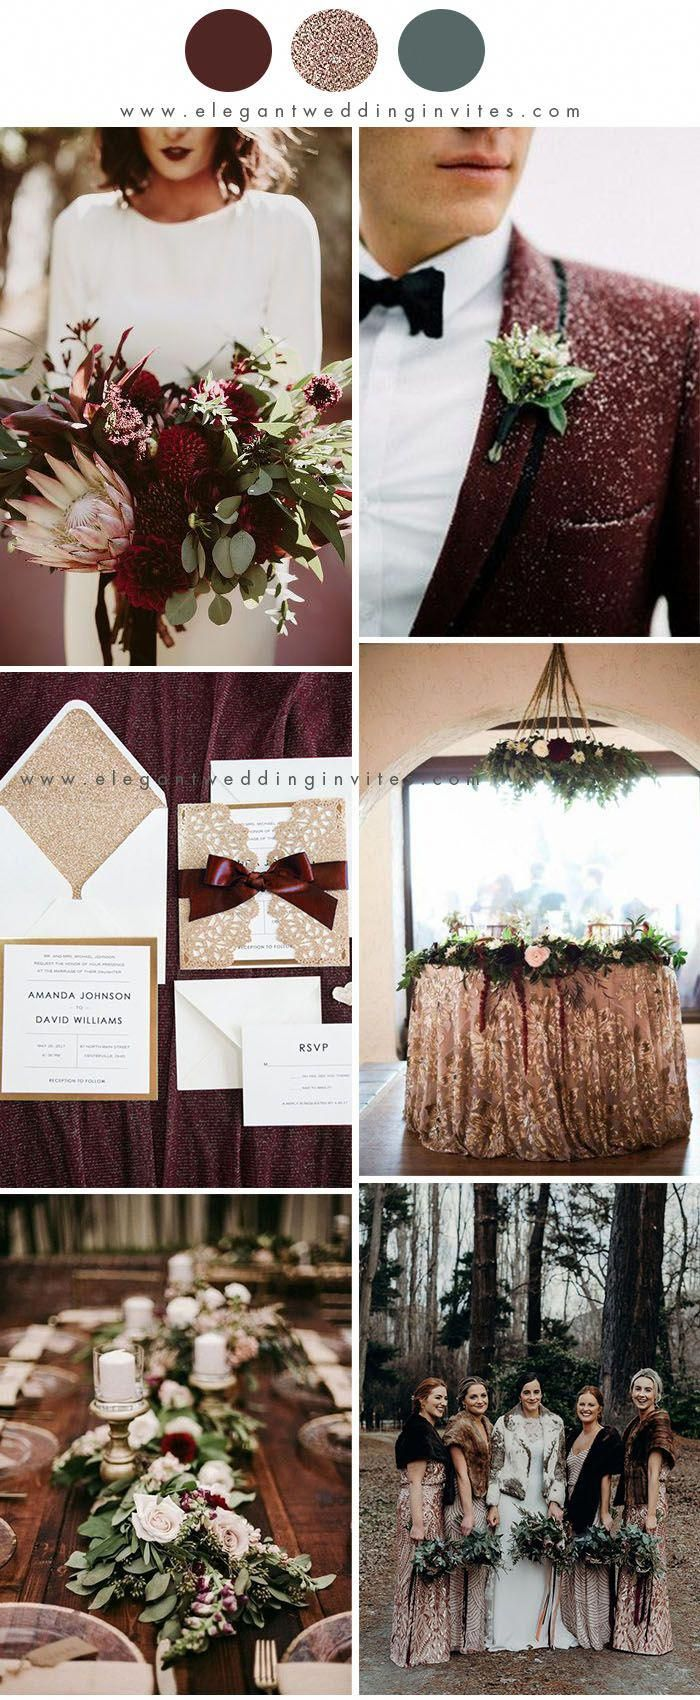 10 Green And Red Christmas Wedding Ideas For Winter 2020 Winter